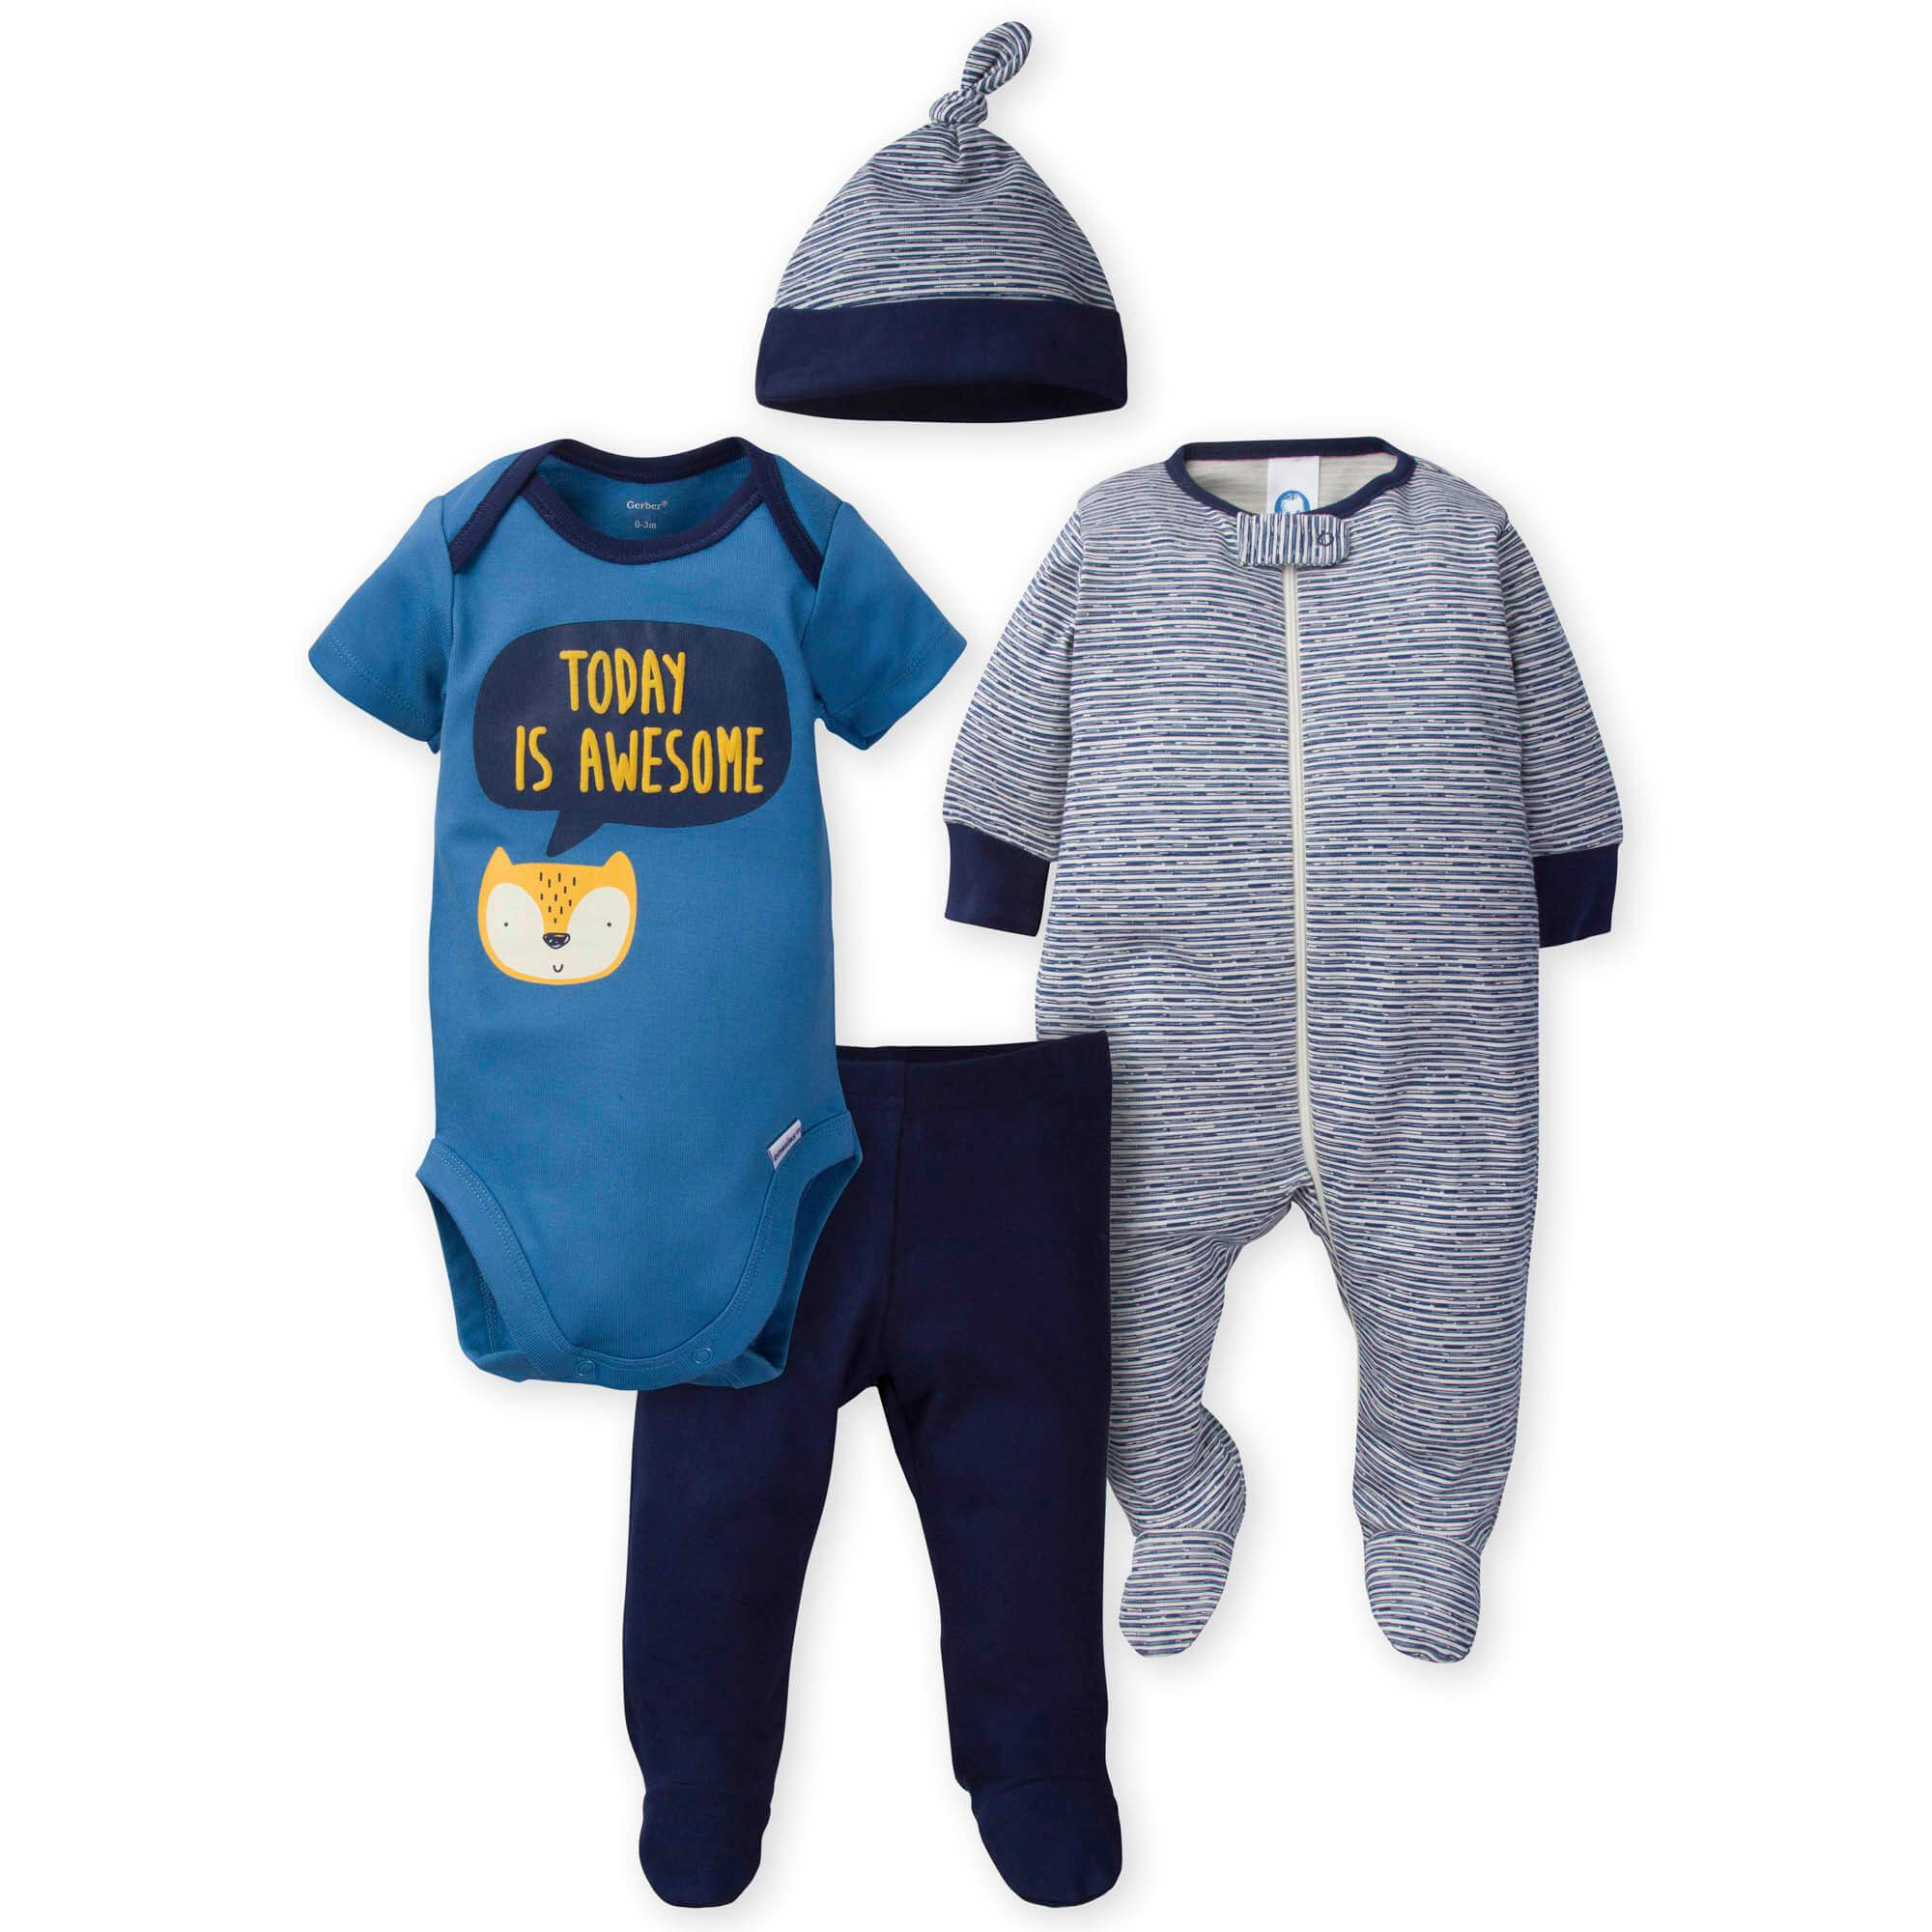 4-Piece Boys Fox Bundled Gift Set